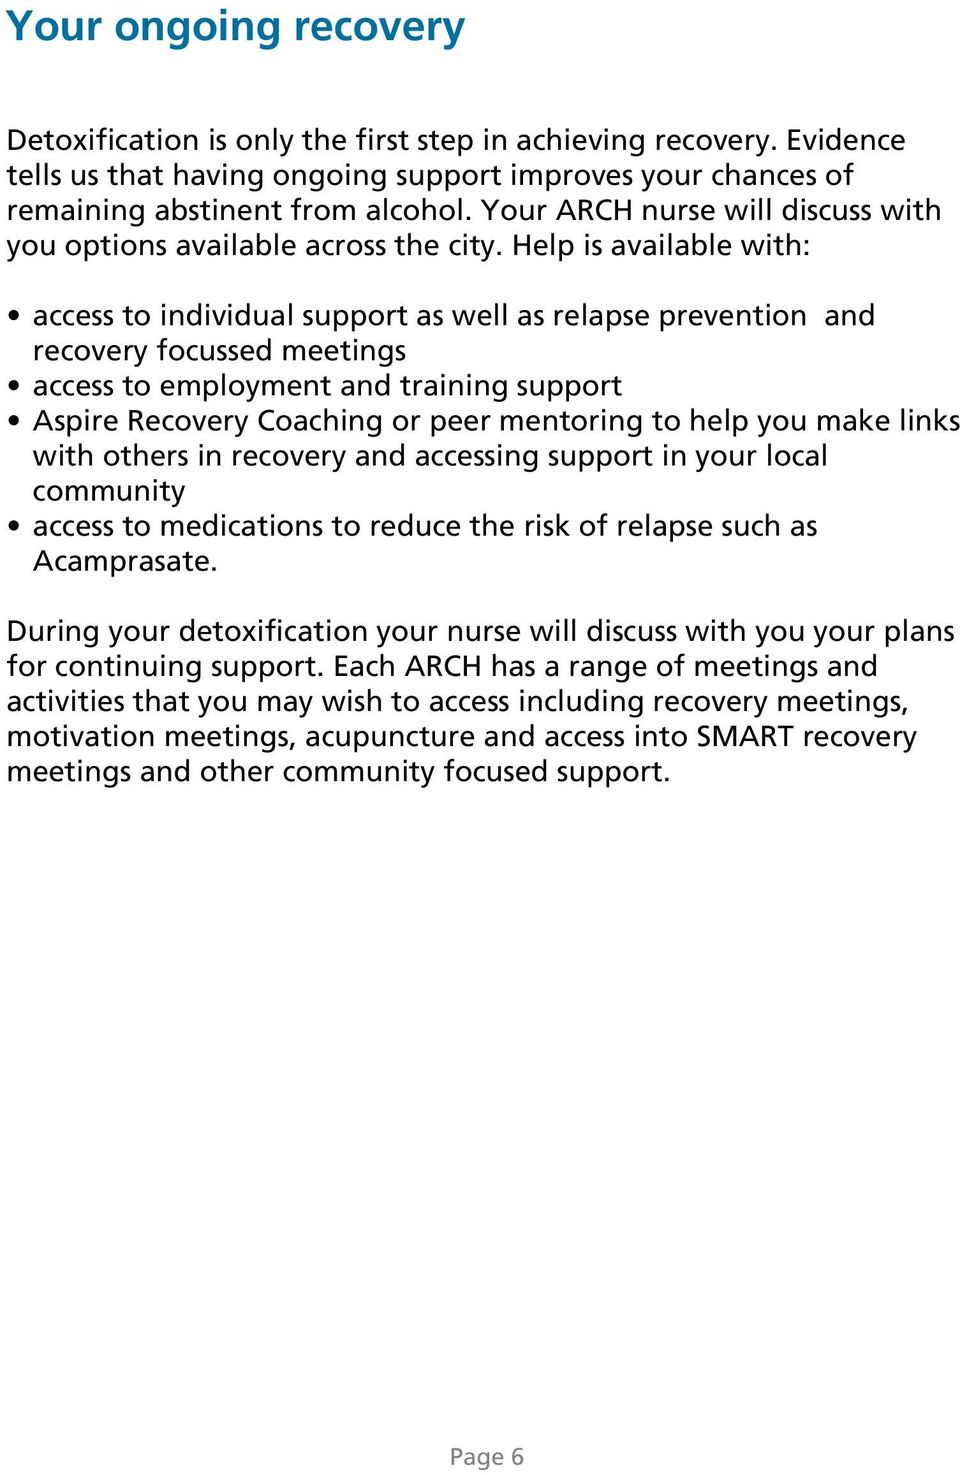 Help is available with: access to individual support as well as relapse prevention and recovery focussed meetings access to employment and training support Aspire Recovery Coaching or peer mentoring